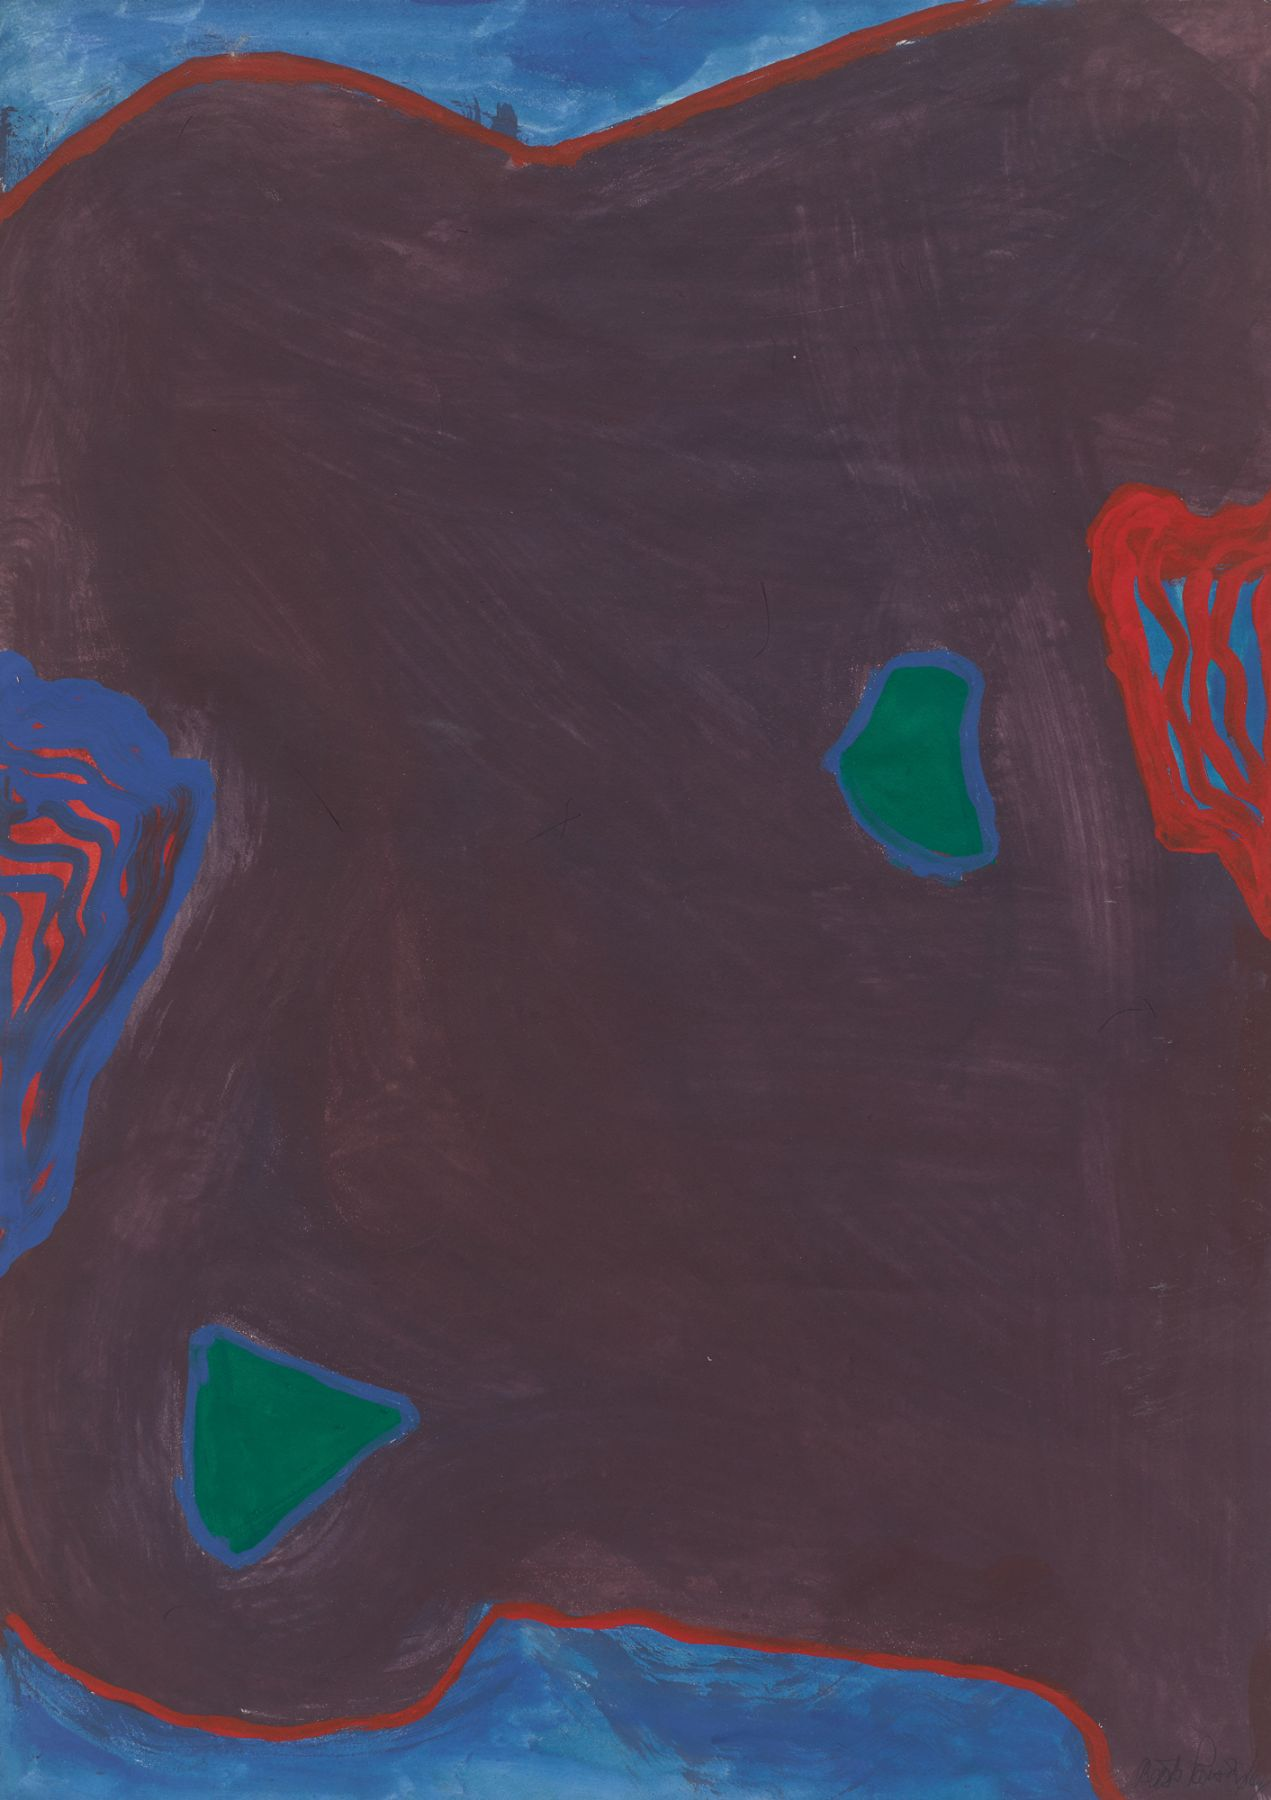 Untitled, 1964, Gouache on paper